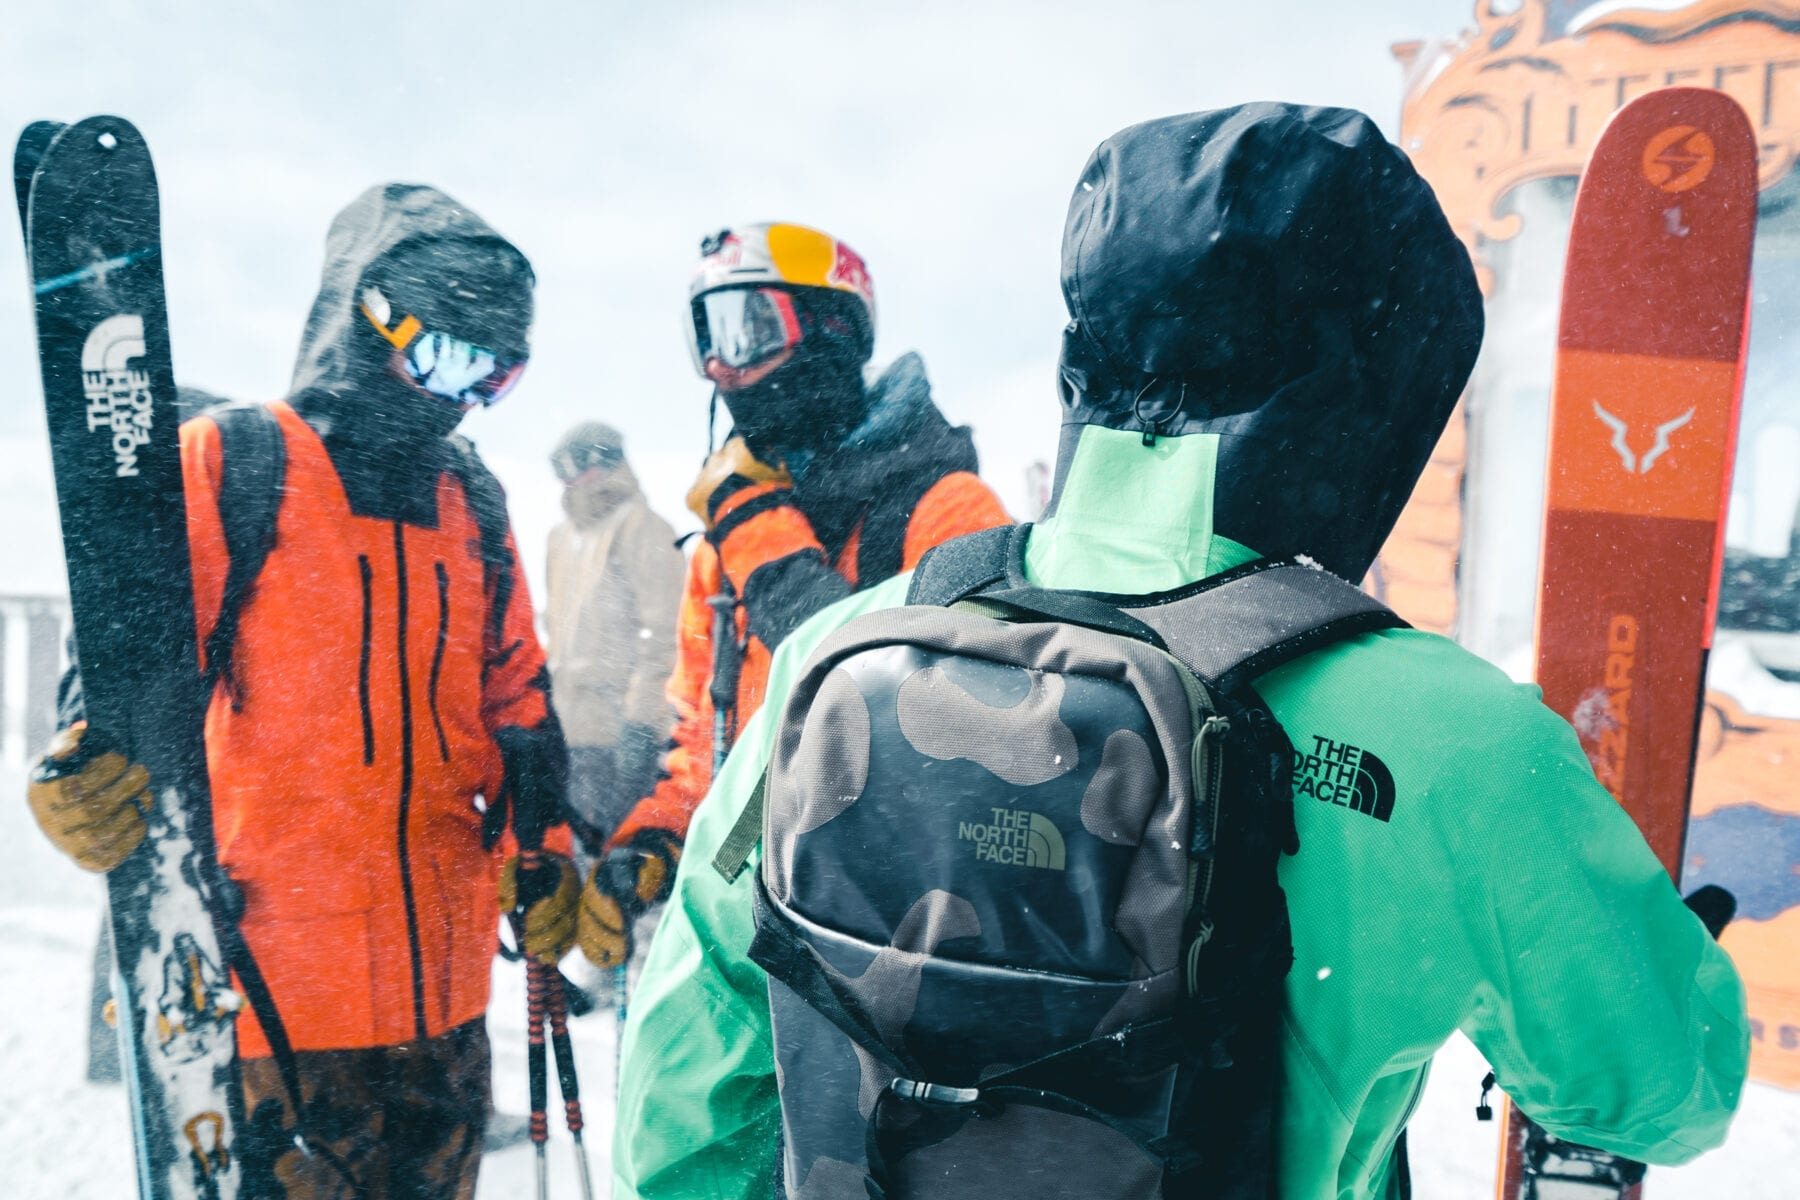 The North Face x TML by Tomorrowland winter